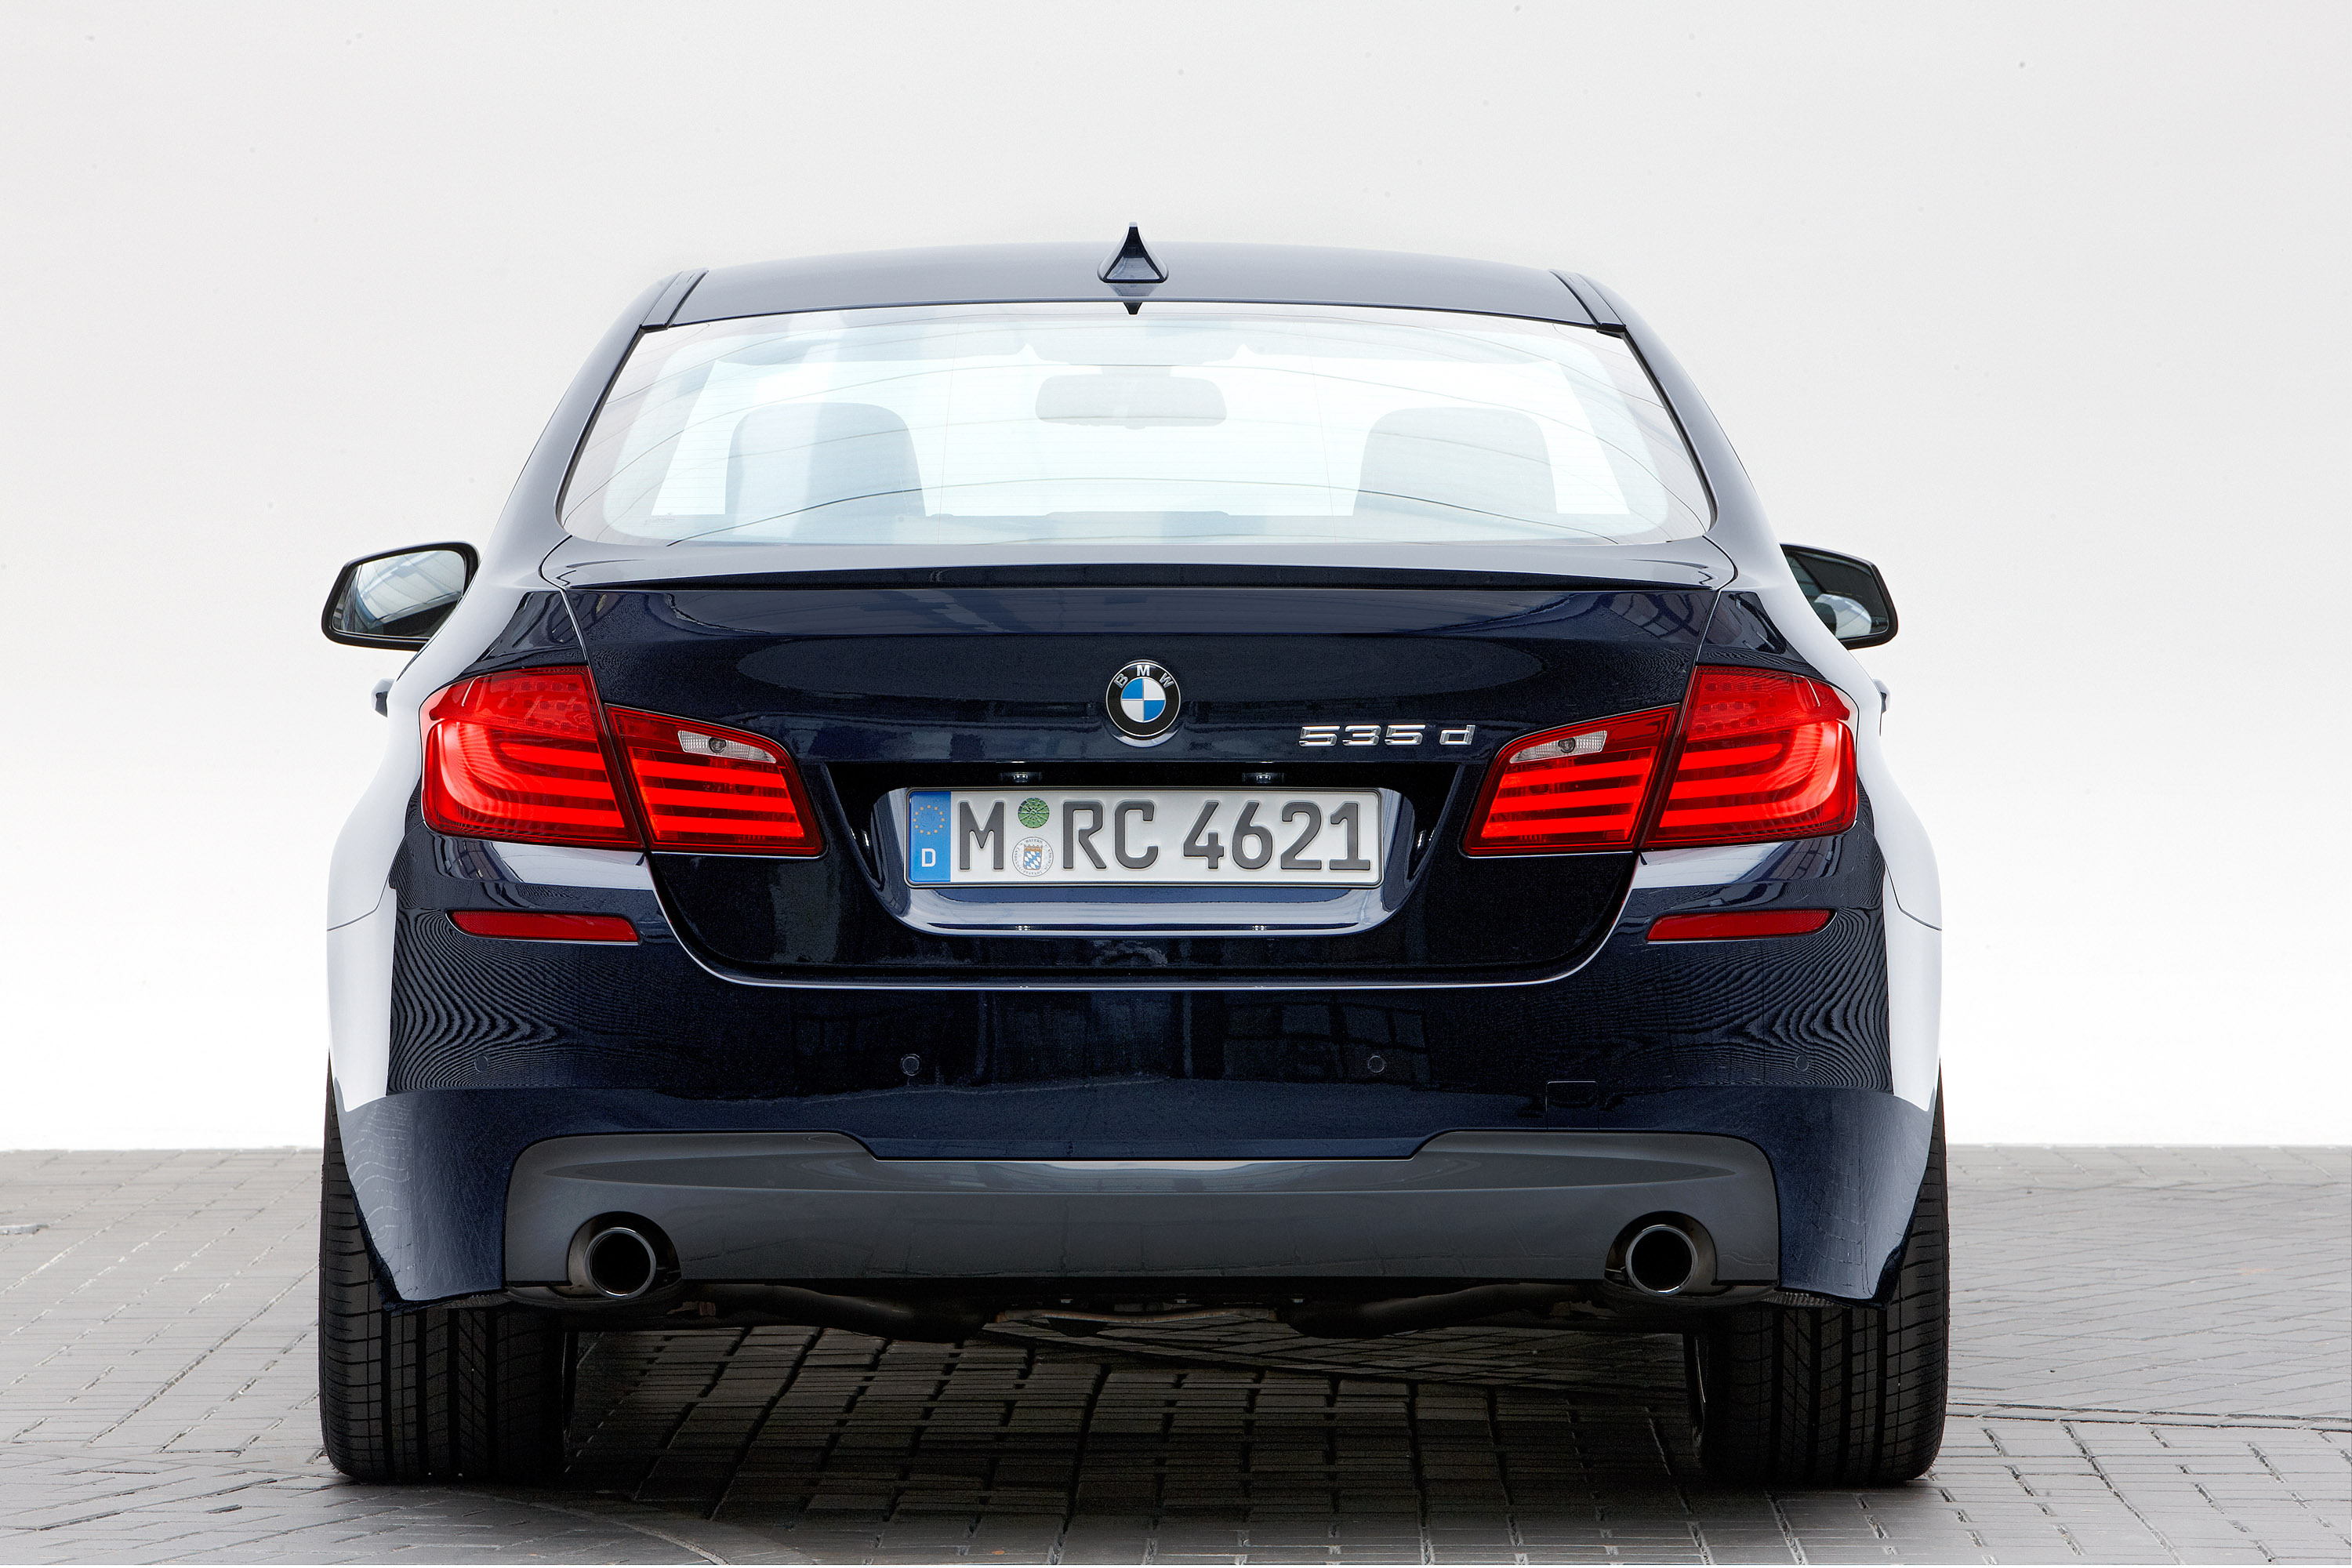 2012 Bmw 528i And Z4 Pricing 47 575 And 49 525